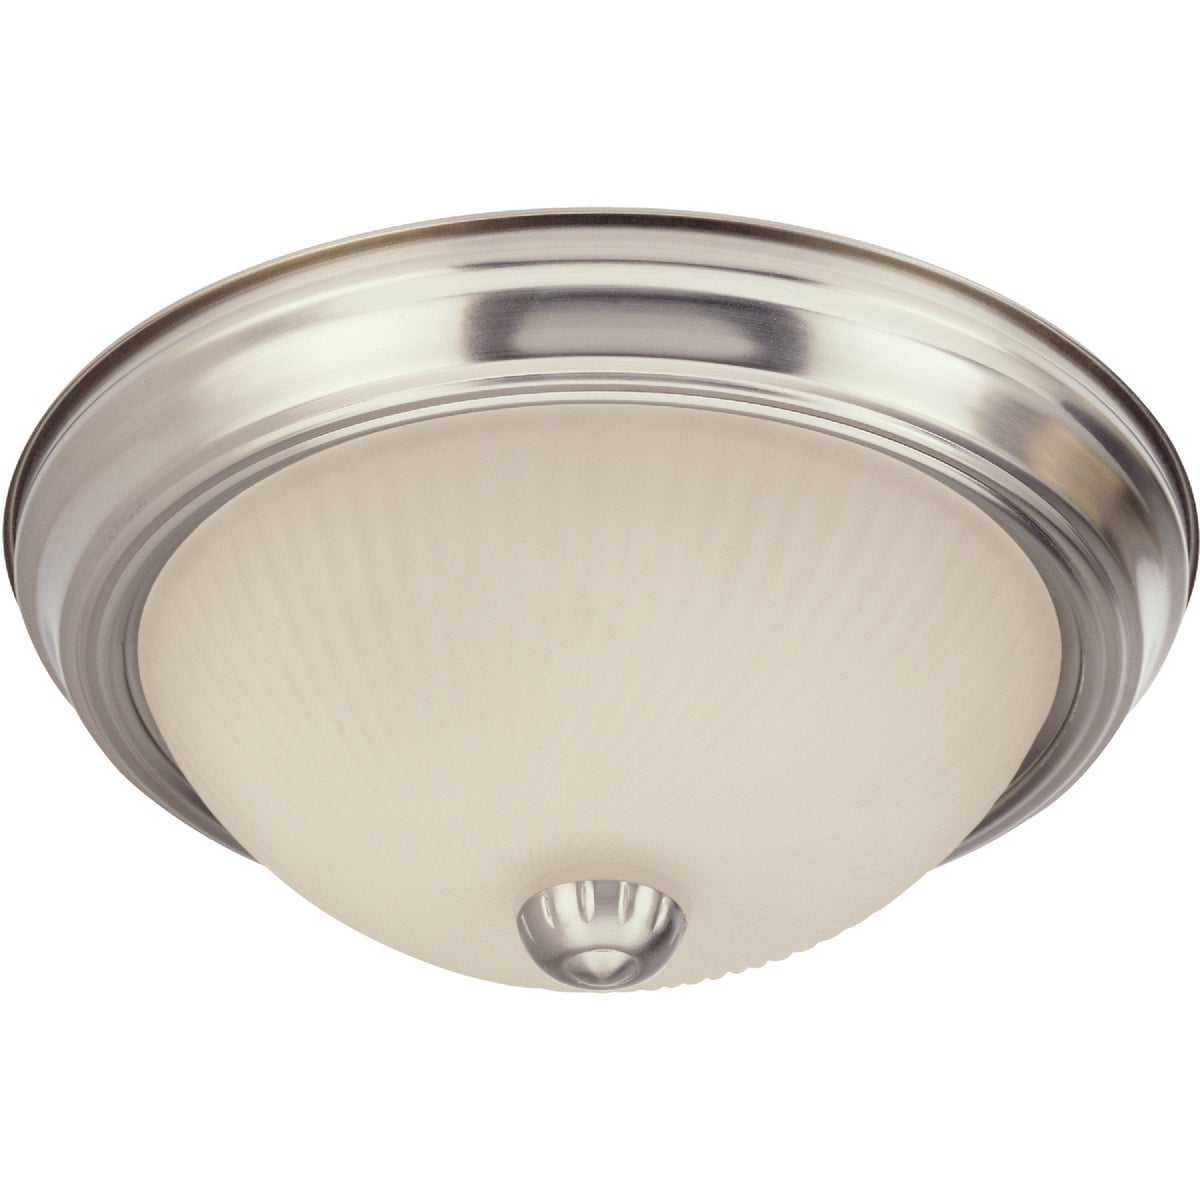 2BULB BN CEILING FIXTURE - IFM211BN by Canarm Gs